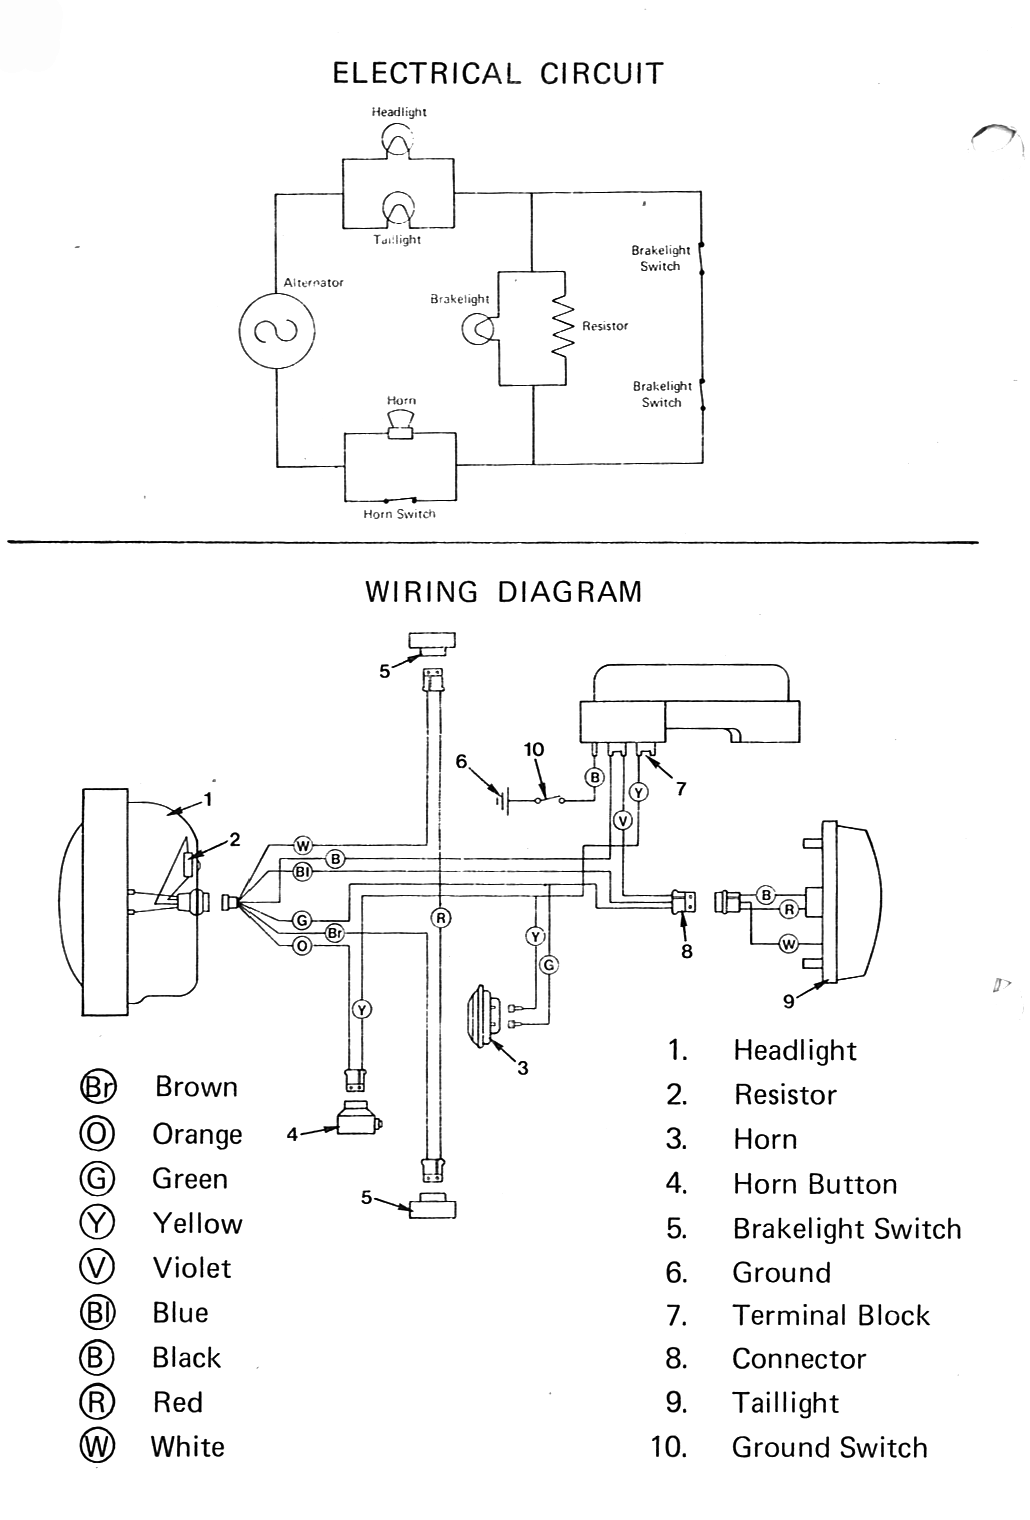 79 johnson wiring diagram free picture schematic wiring diagram1991 yamaha 115 wiring diagram schematic wiring diagrams click1991 yamaha 115 wiring diagram schematic wiring library